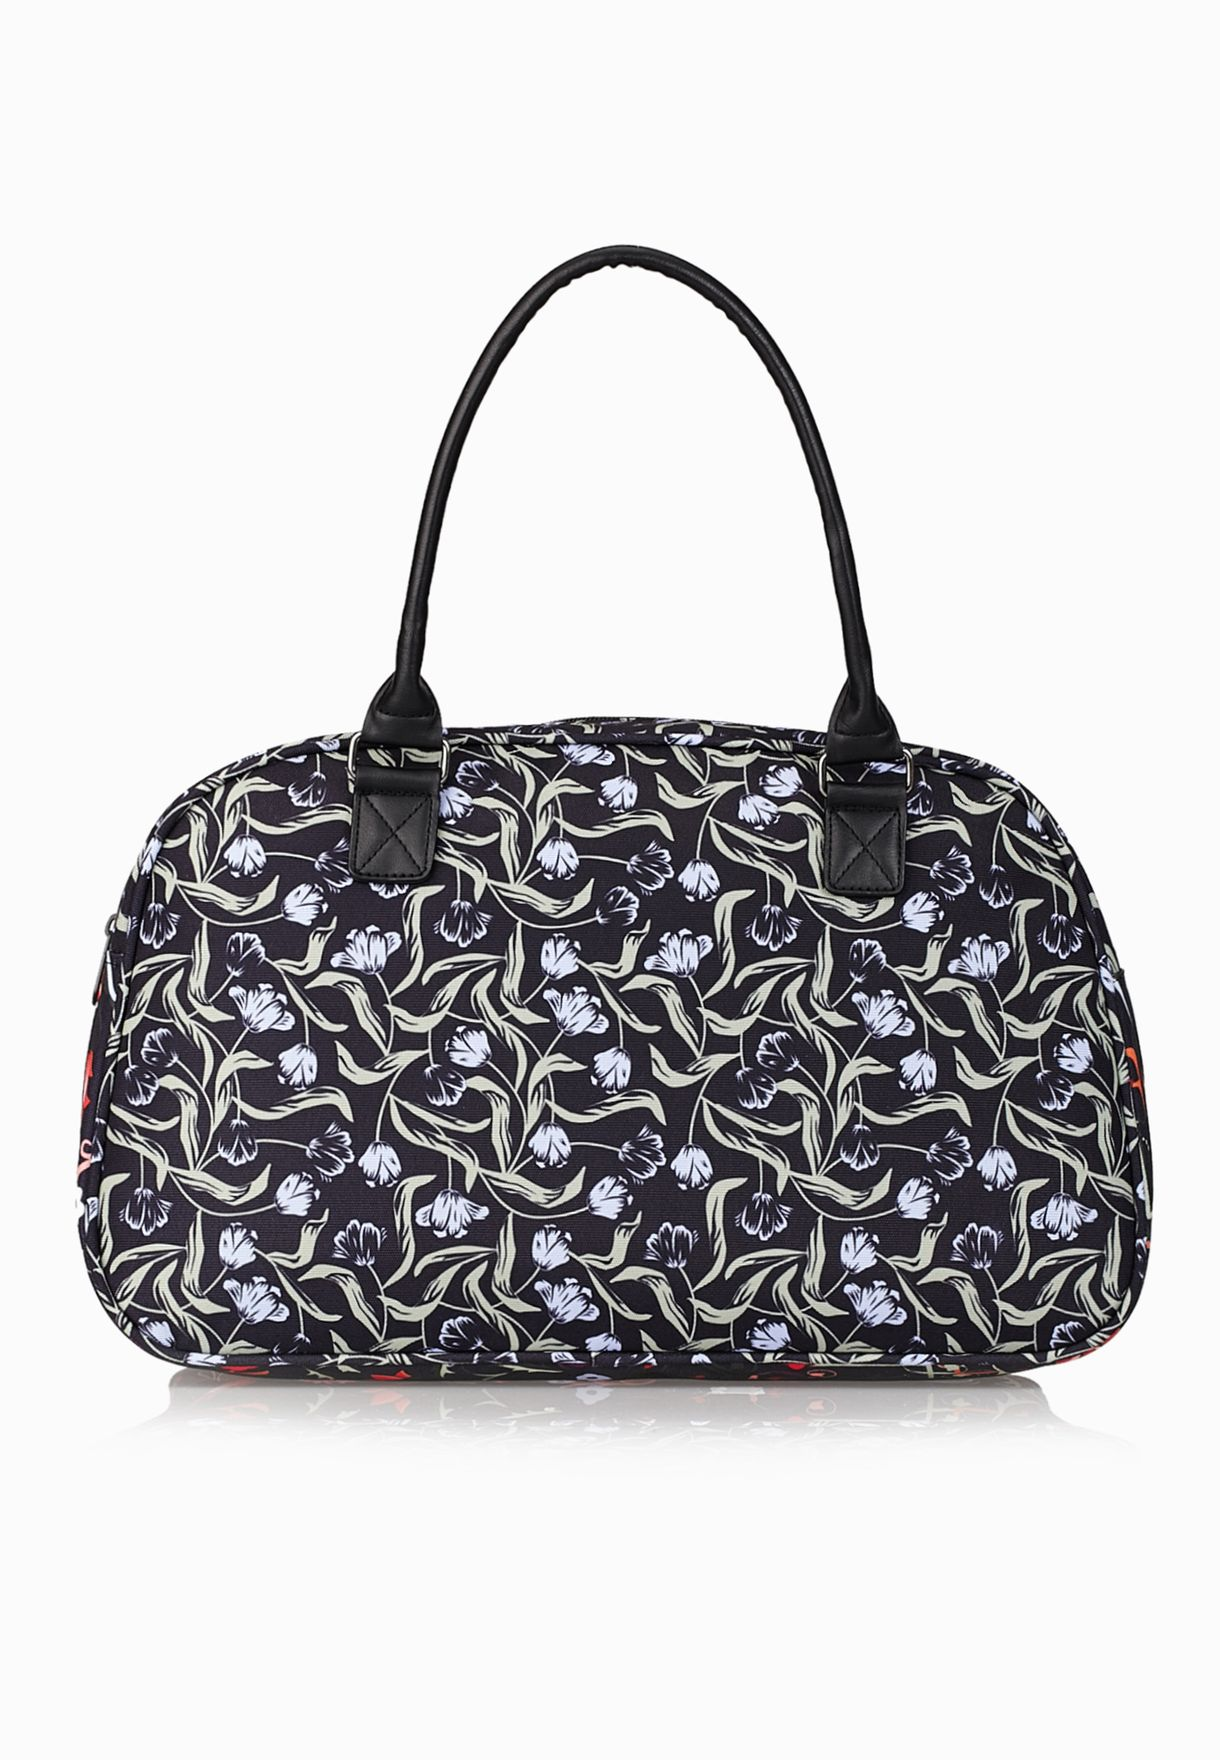 8b1c5e51dbf7 Shop adidas Originals prints Moscow Bowling Bag AB3002 for Women in ...